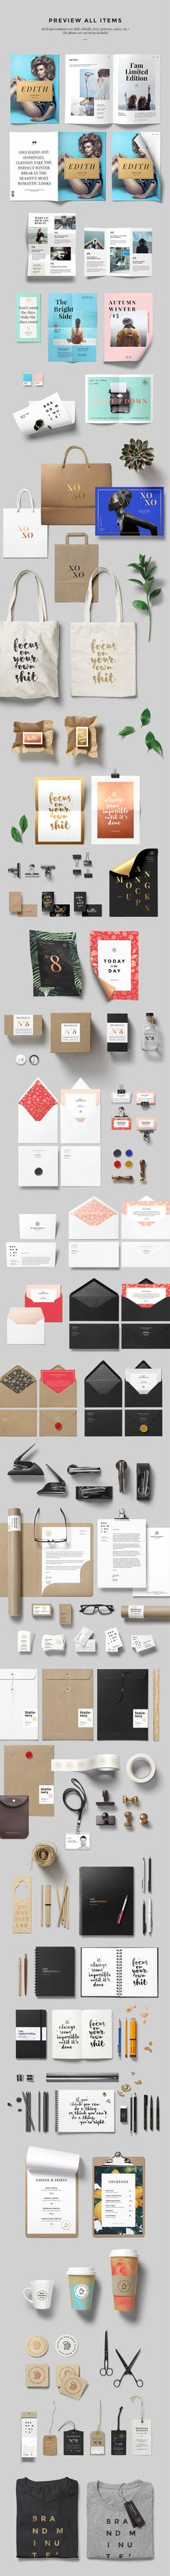 Brandminute Mockups:  Create stunning branding showcases & hero scenes in minutes! All design layouts used for showcase purposes are fully editable. You can change the text, colors, patterns, etc.